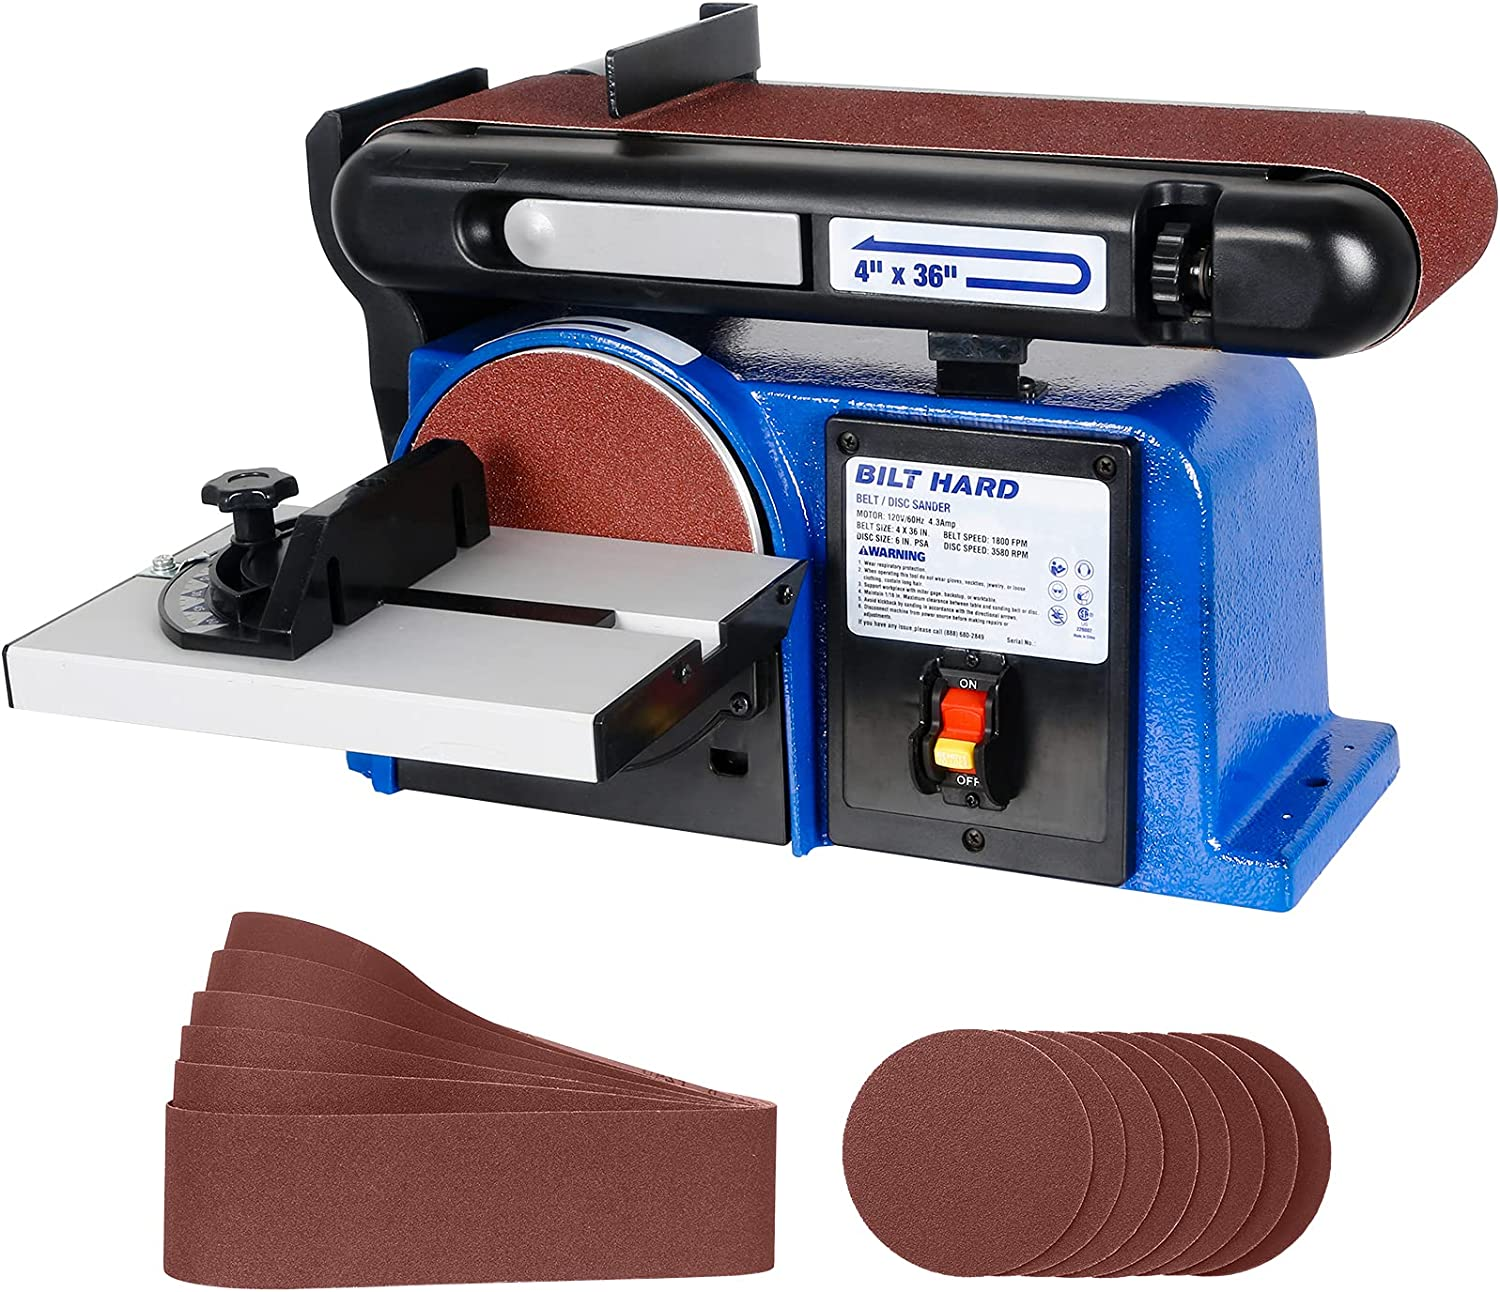 Bombing All items in the store new work BILT HARD Belt Disc Sander Combo 4 x and Inch Di 36 6